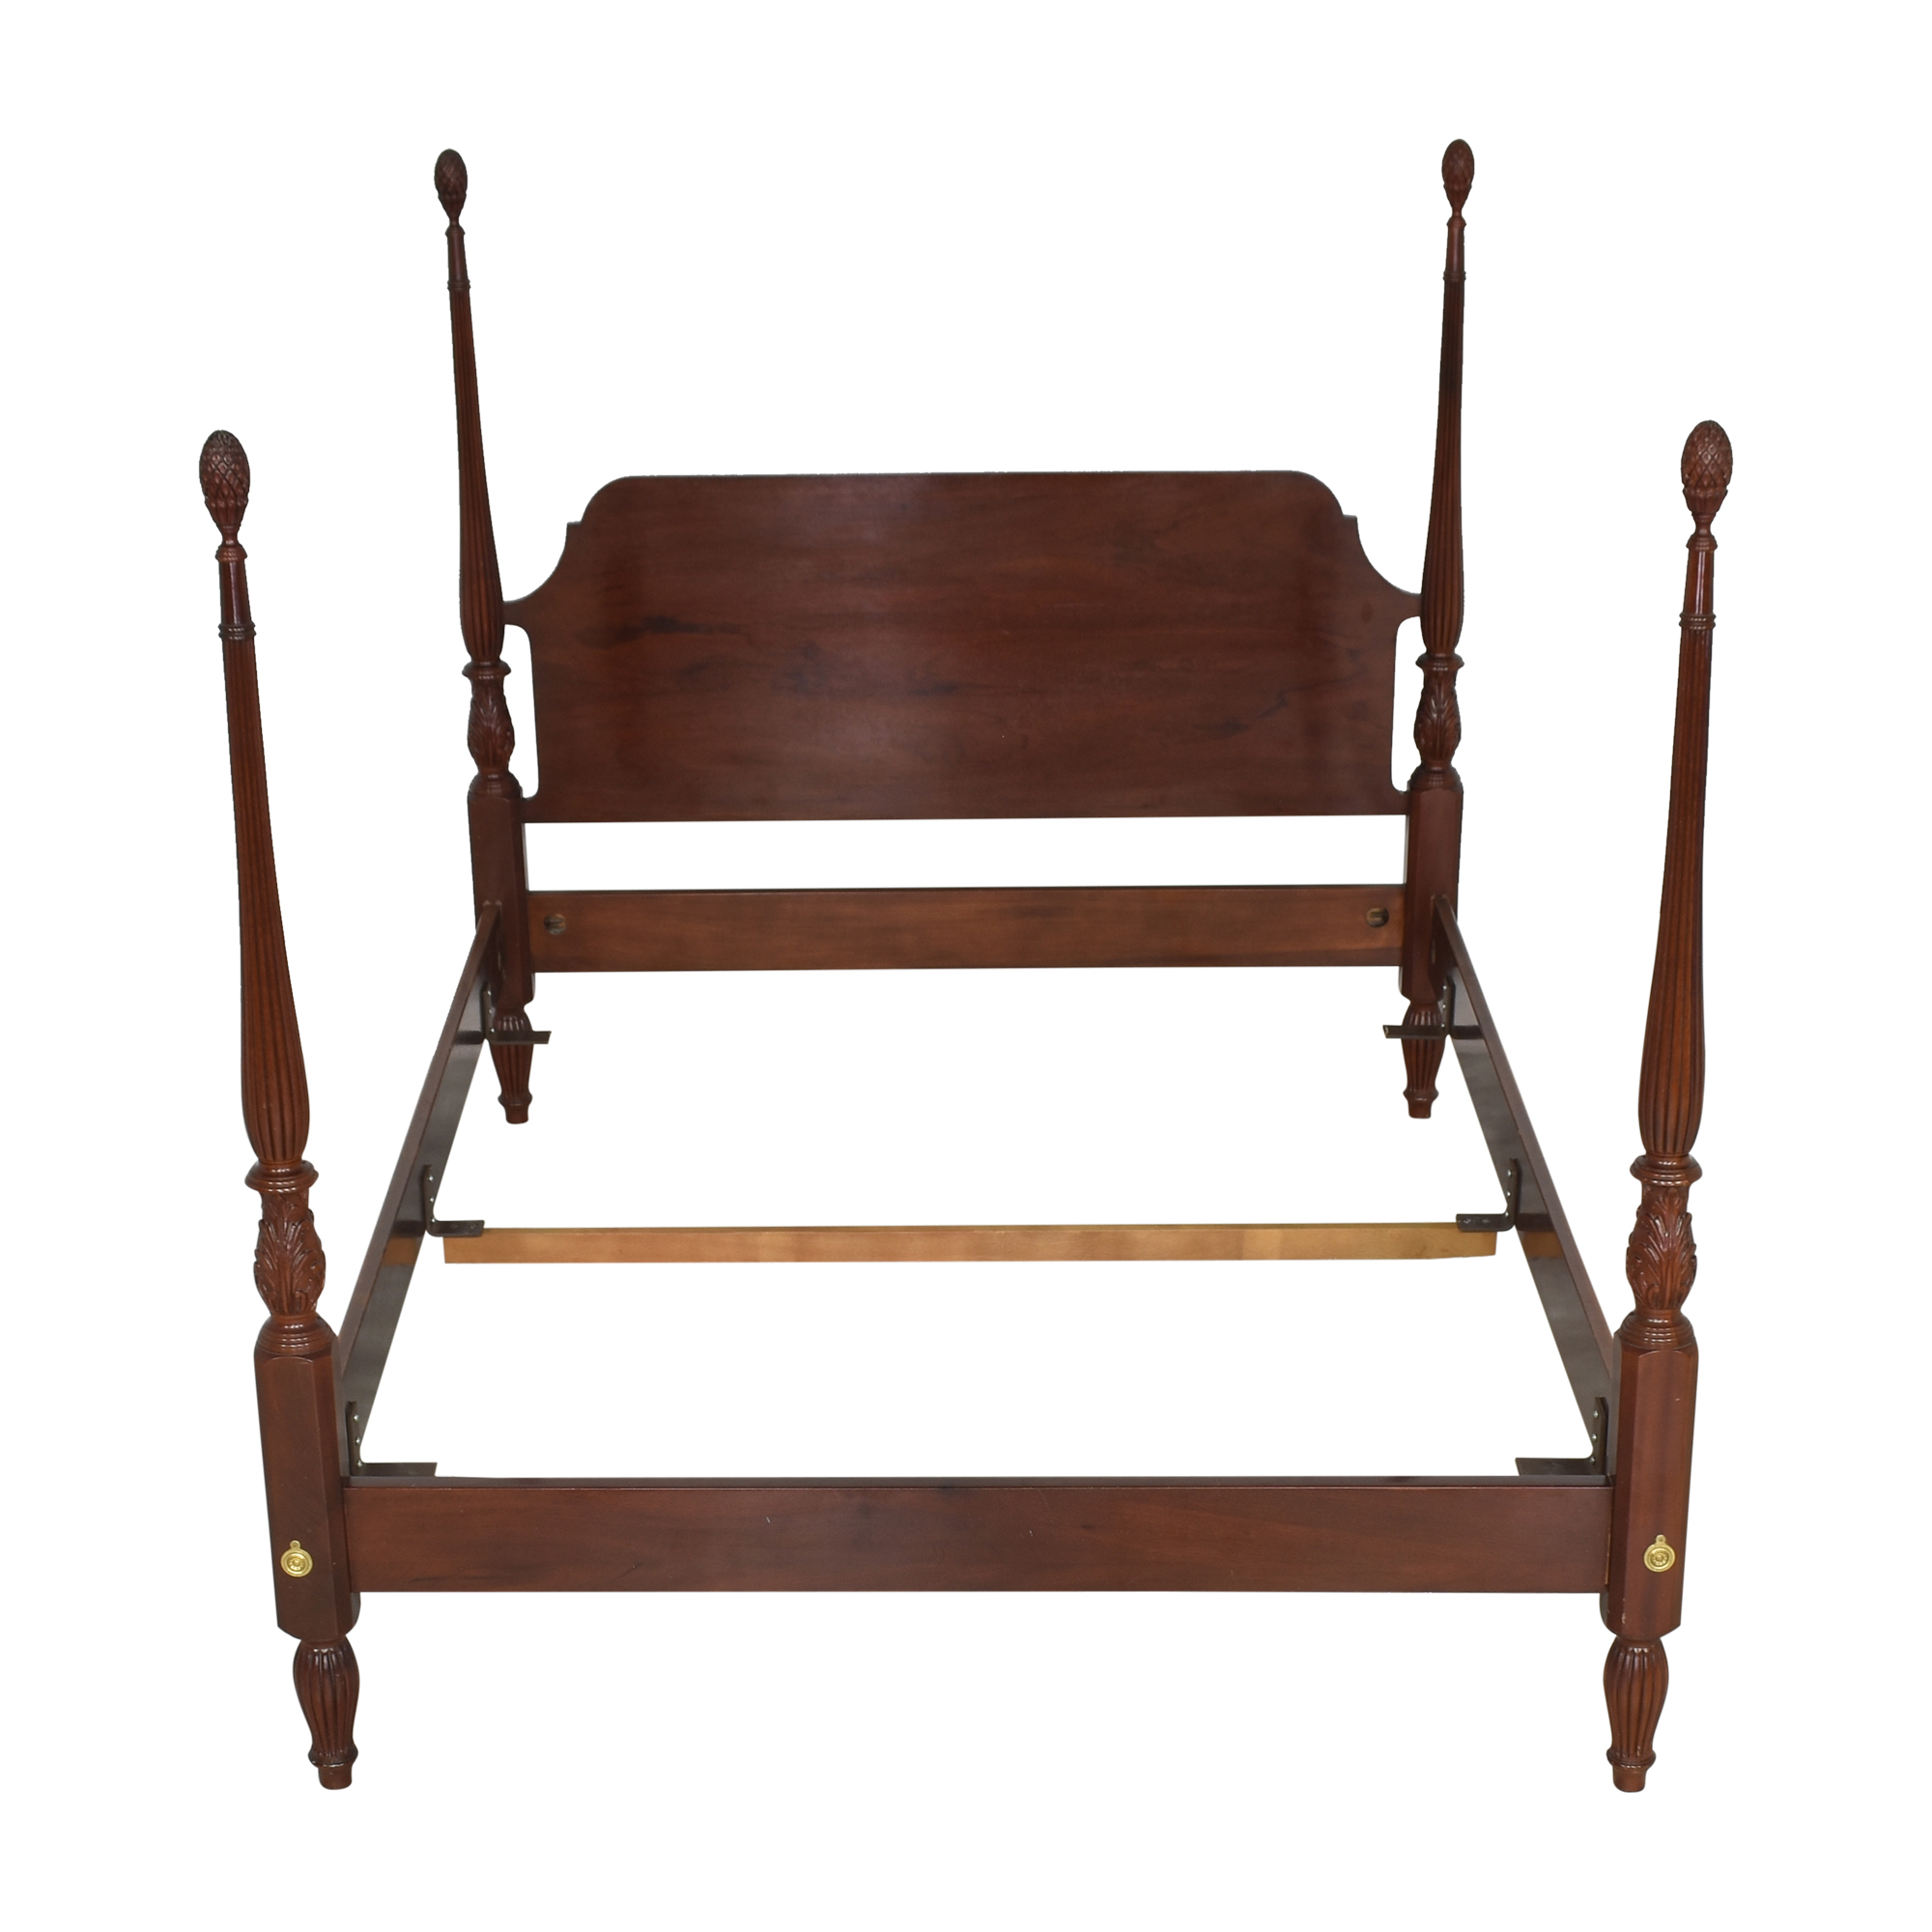 Councill Councill Four Poster Queen Bed Bed Frames